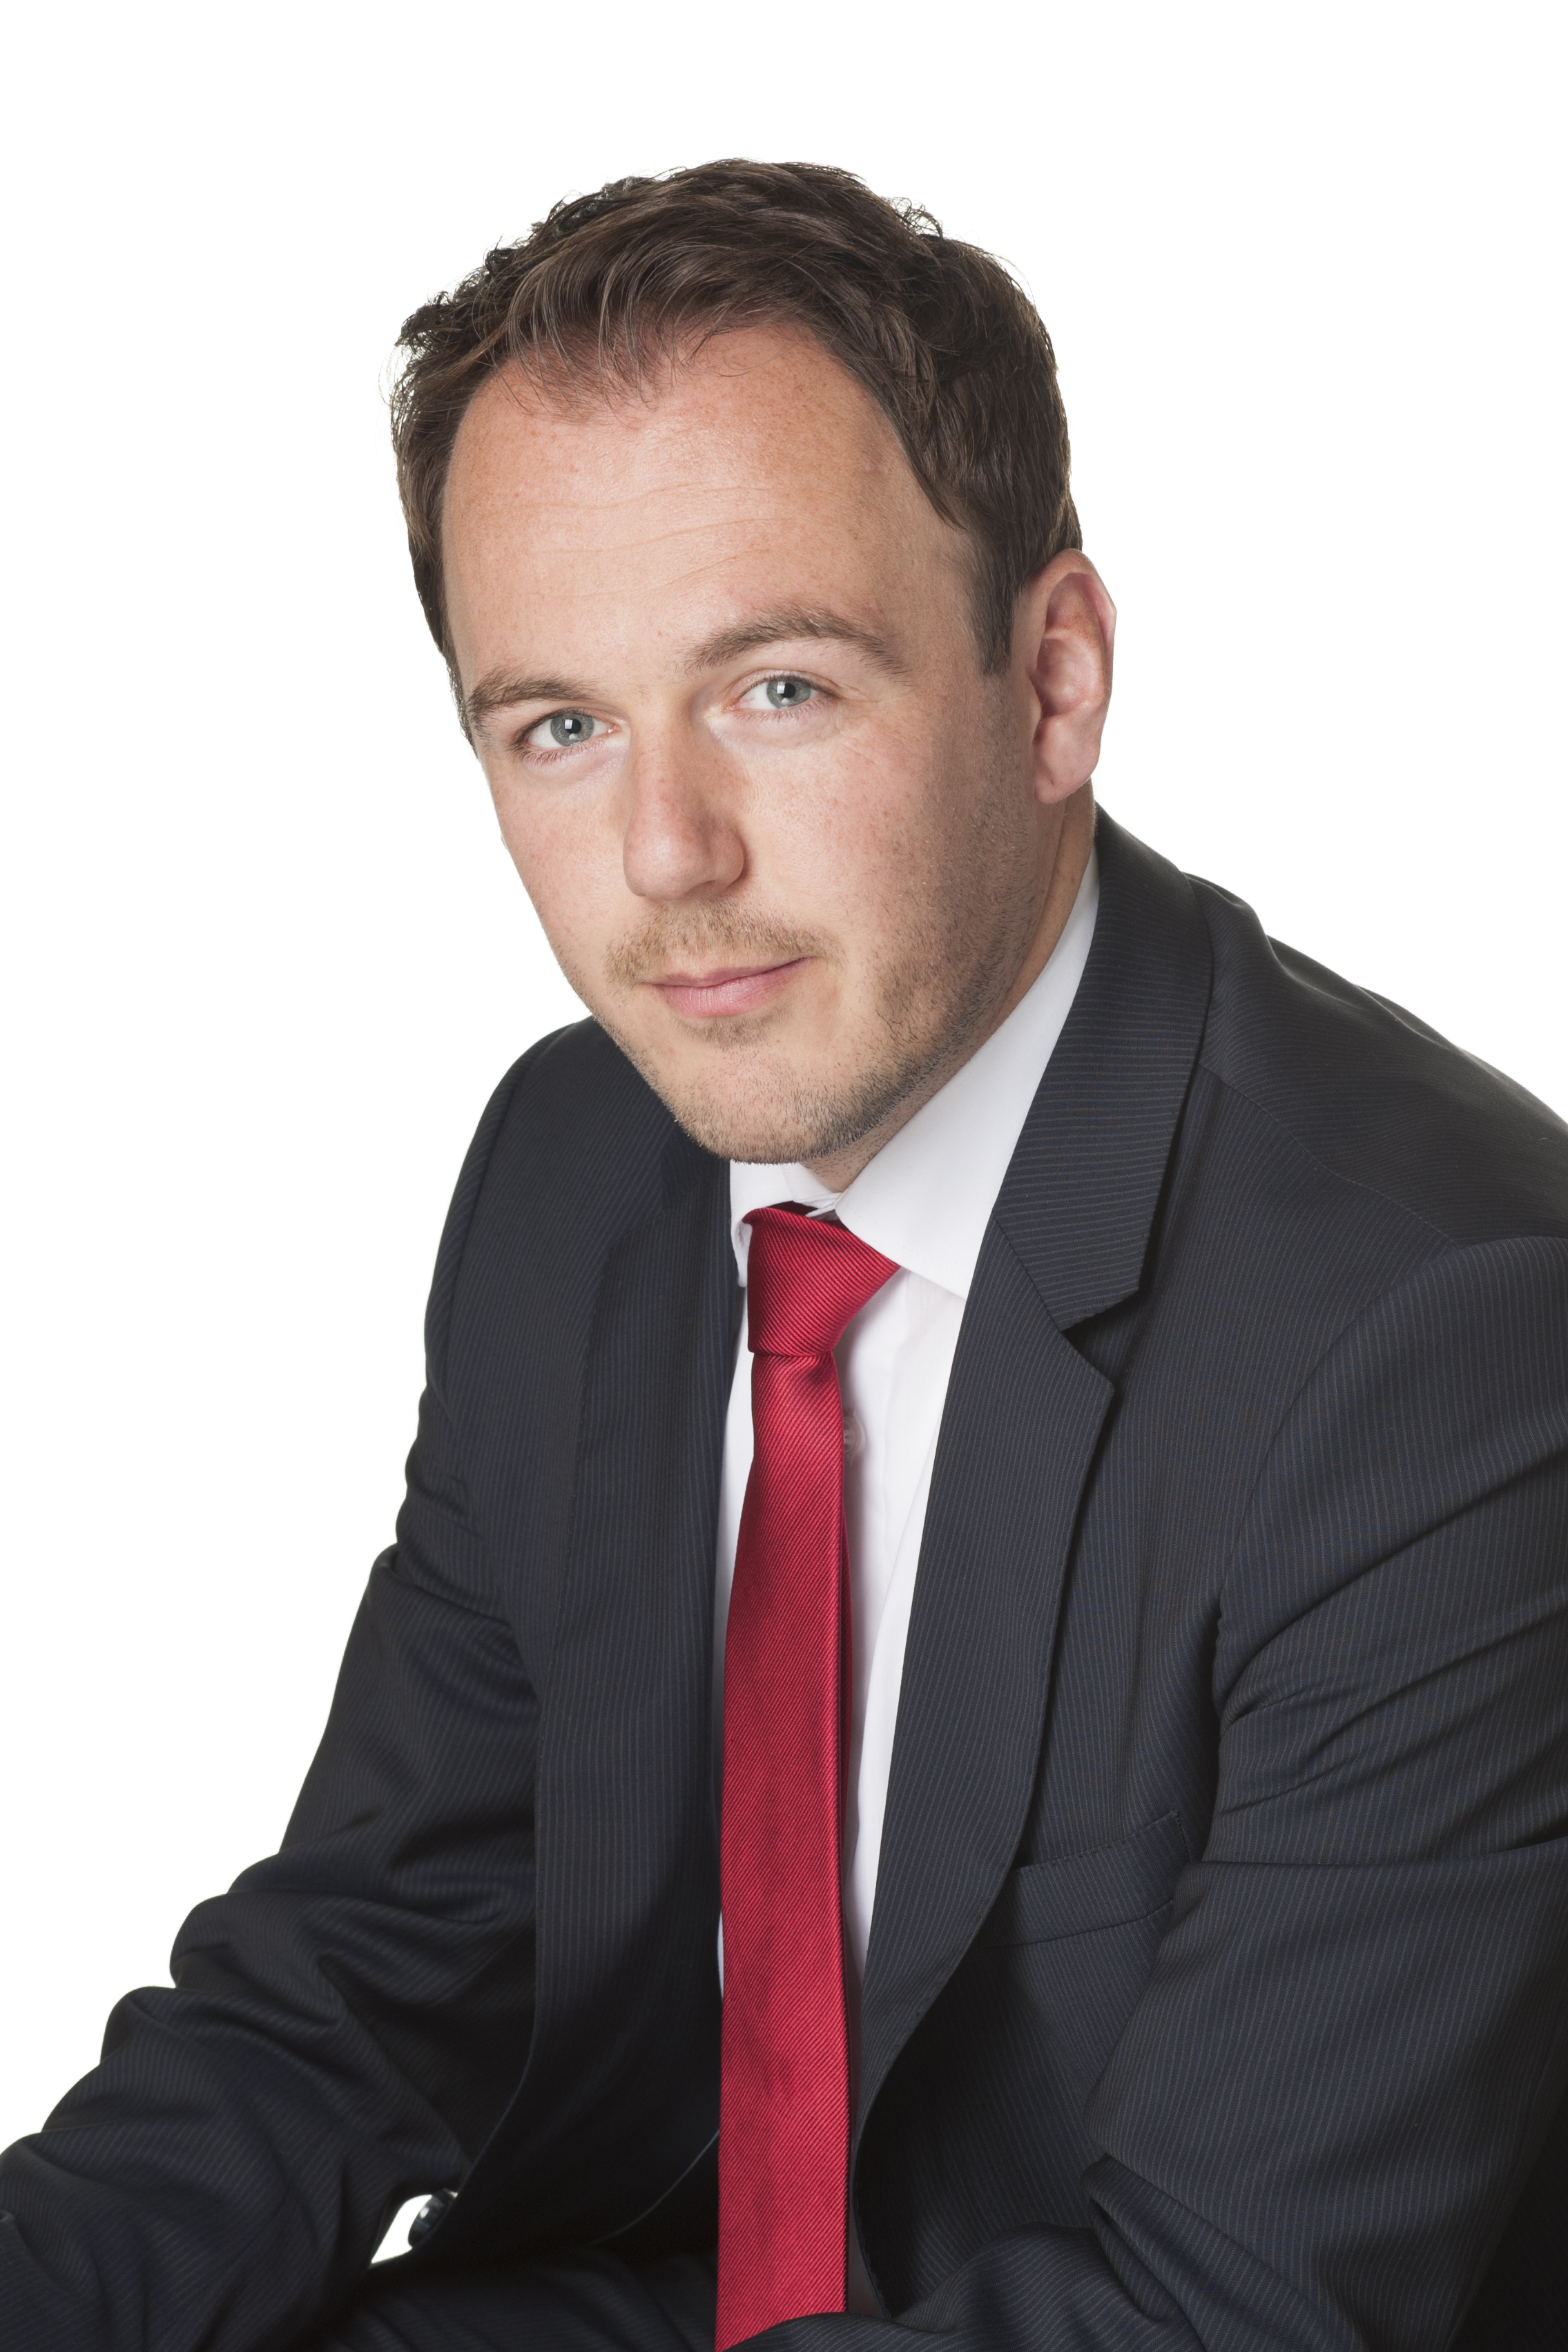 David Harleman benoemd als Head of Product Development bij Triodos Investment Management